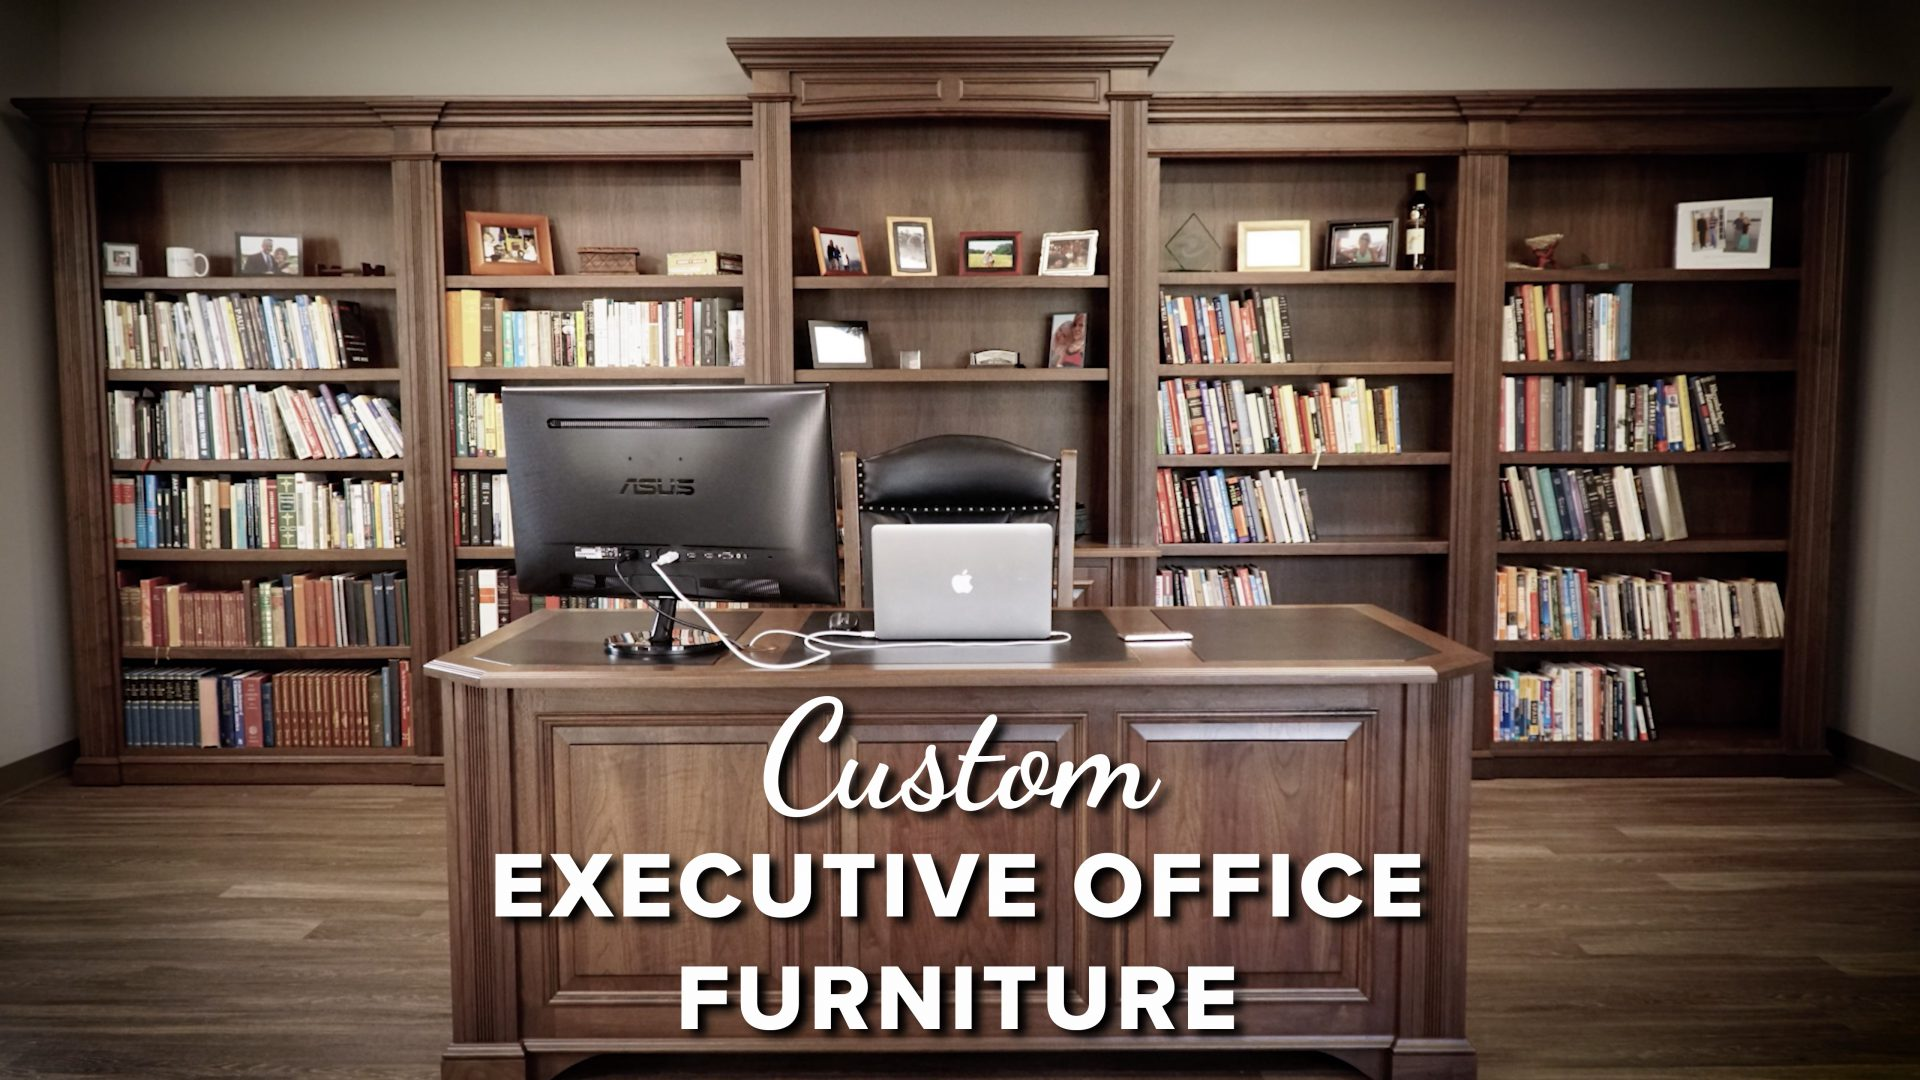 Make an Impression with Custom Executive Office Furniture